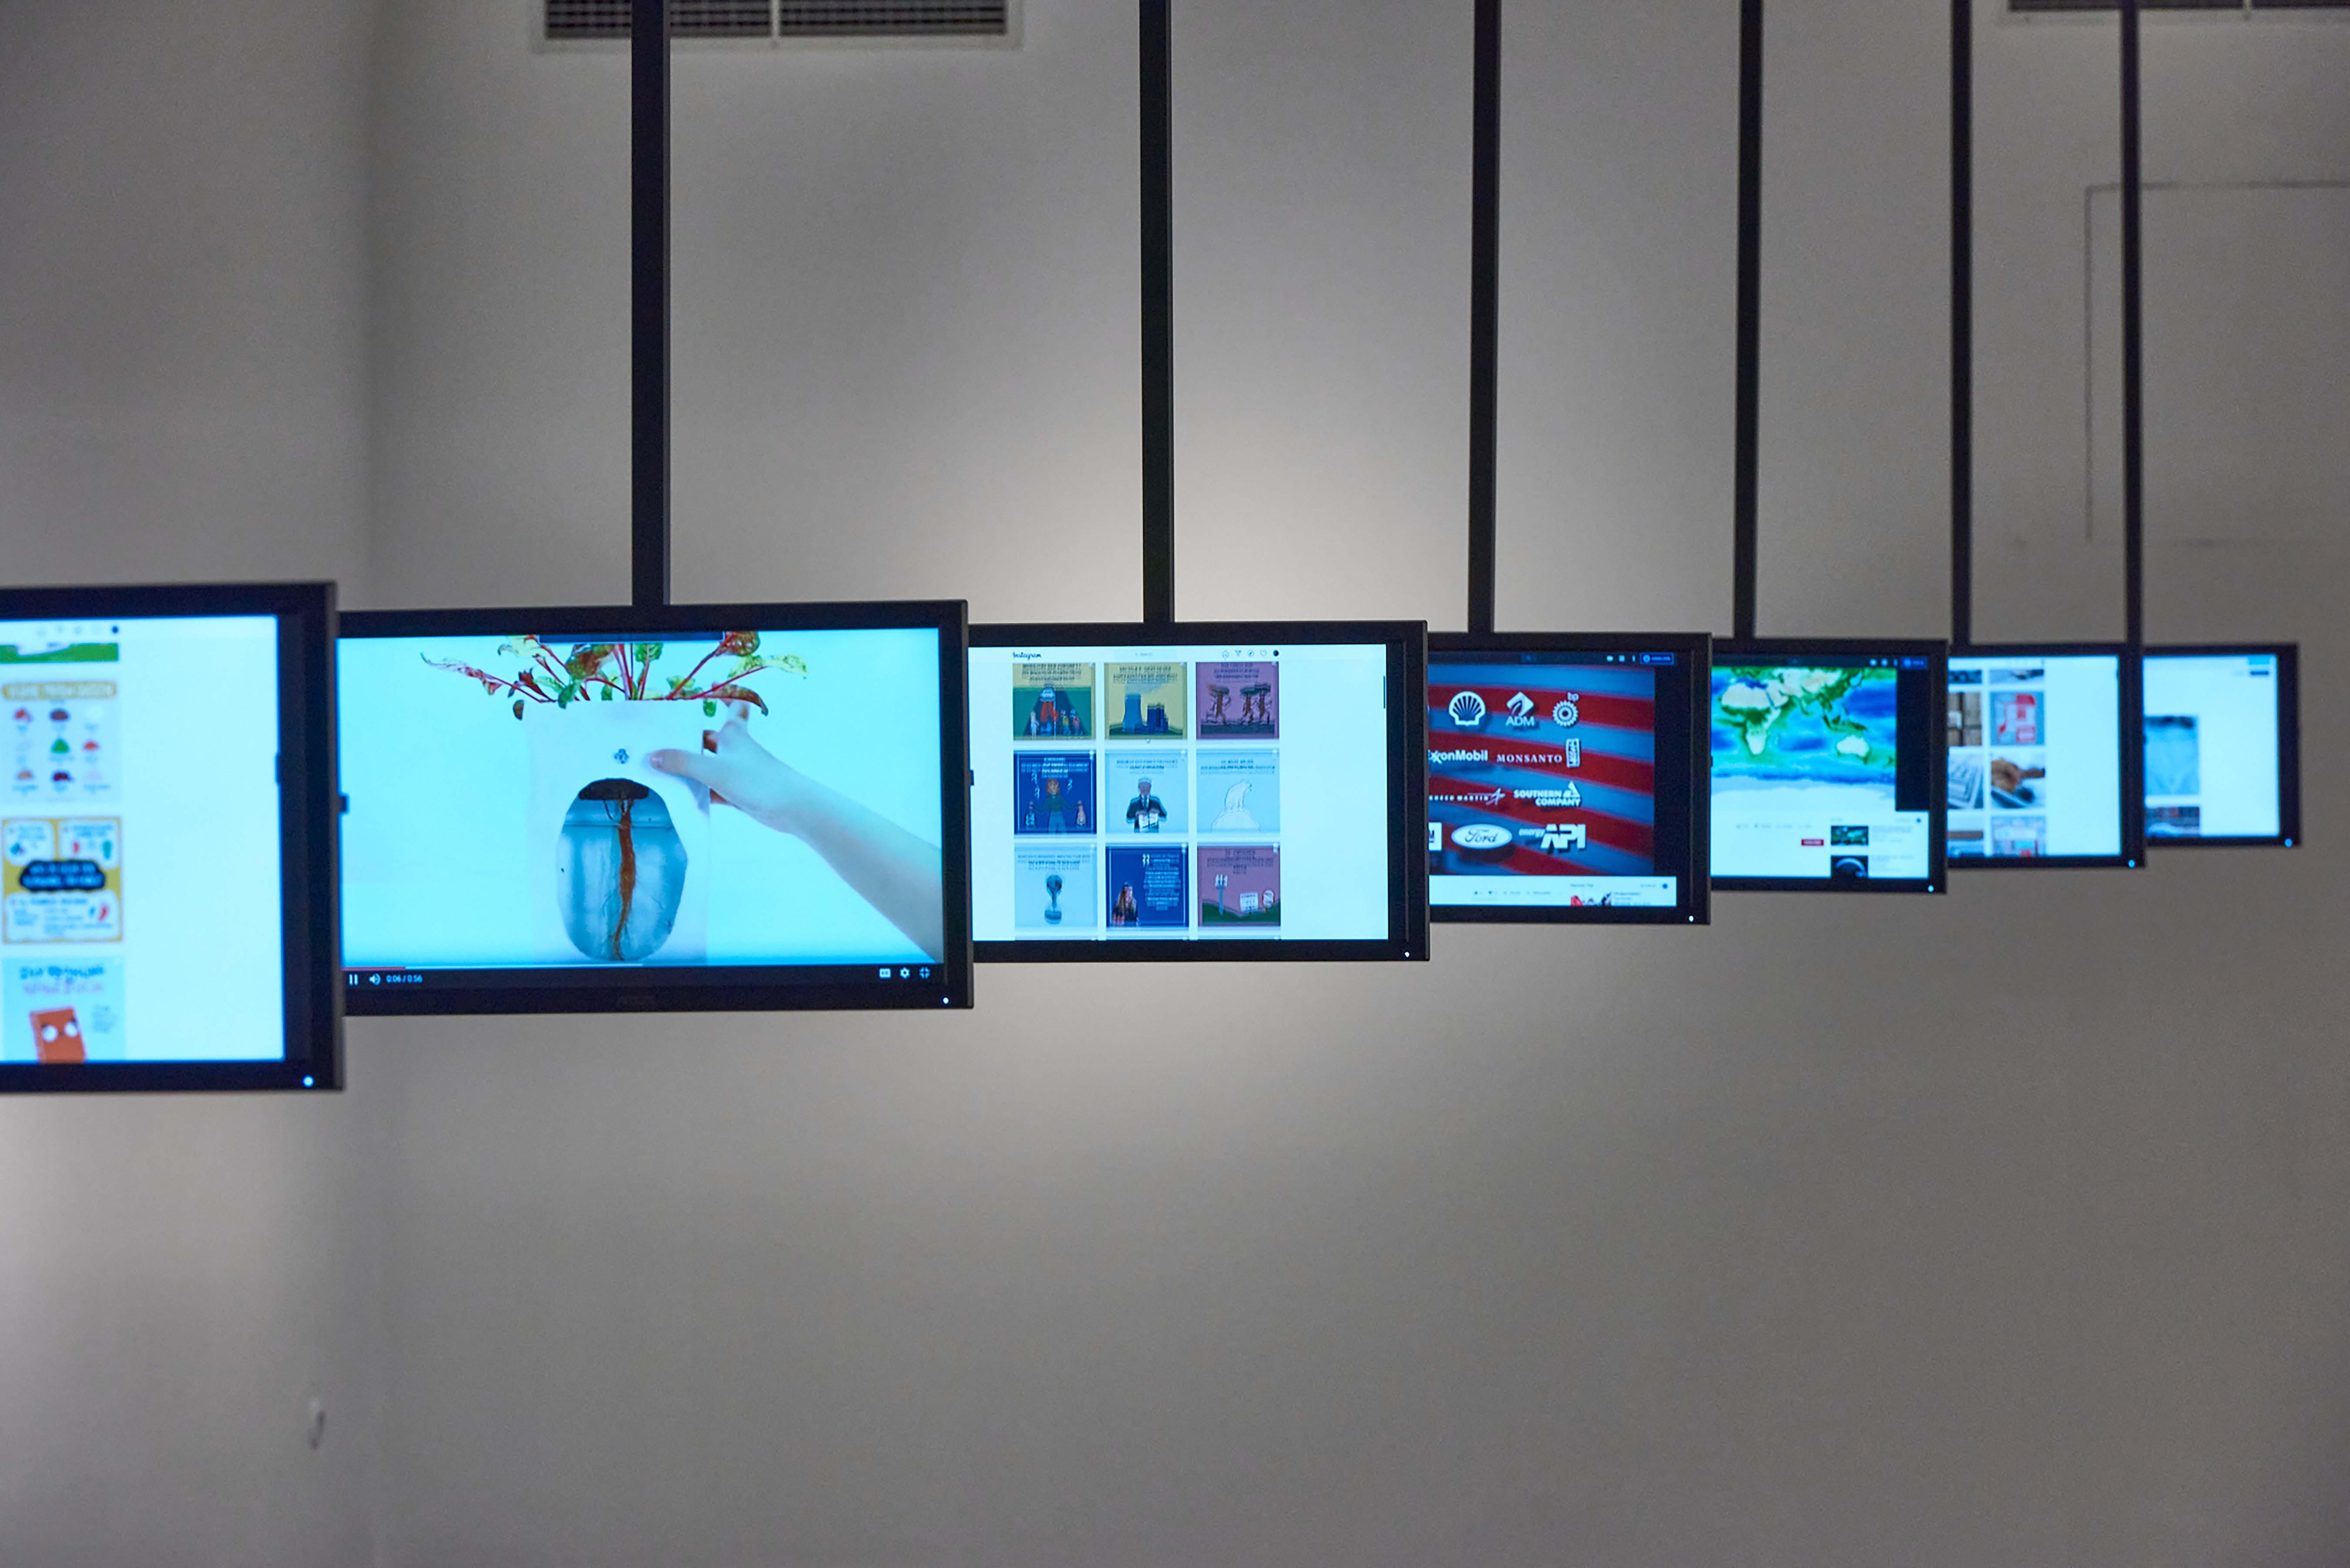 <BODY><div>MAK Exhibition View, 2020</div><div>Florian Semlitsch: Subscribe Climate Care</div><div>MAK GALLERY</div><div>© MAK/Georg Mayer</div></BODY>